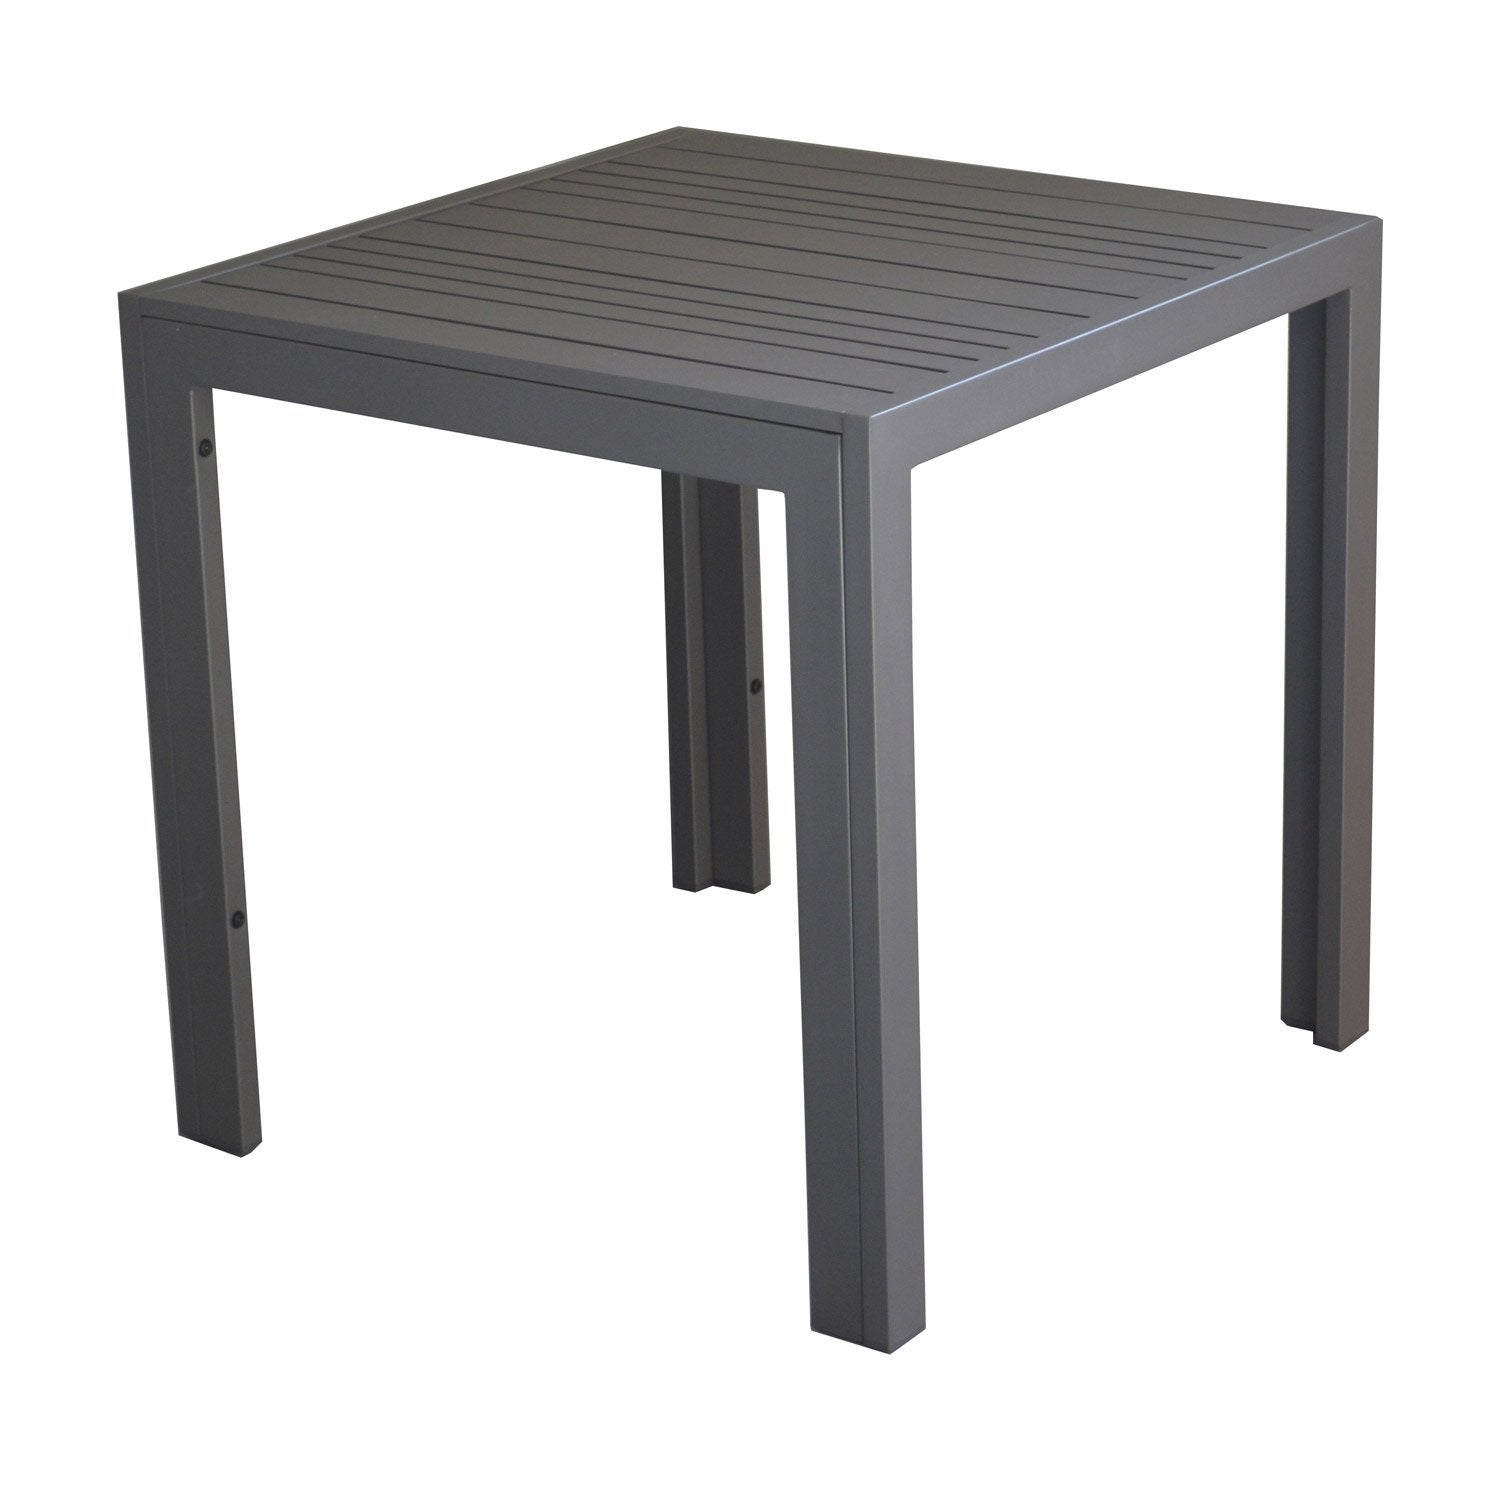 Table basse carr e gris 2 personnes leroy merlin for Table exterieur 2 personnes